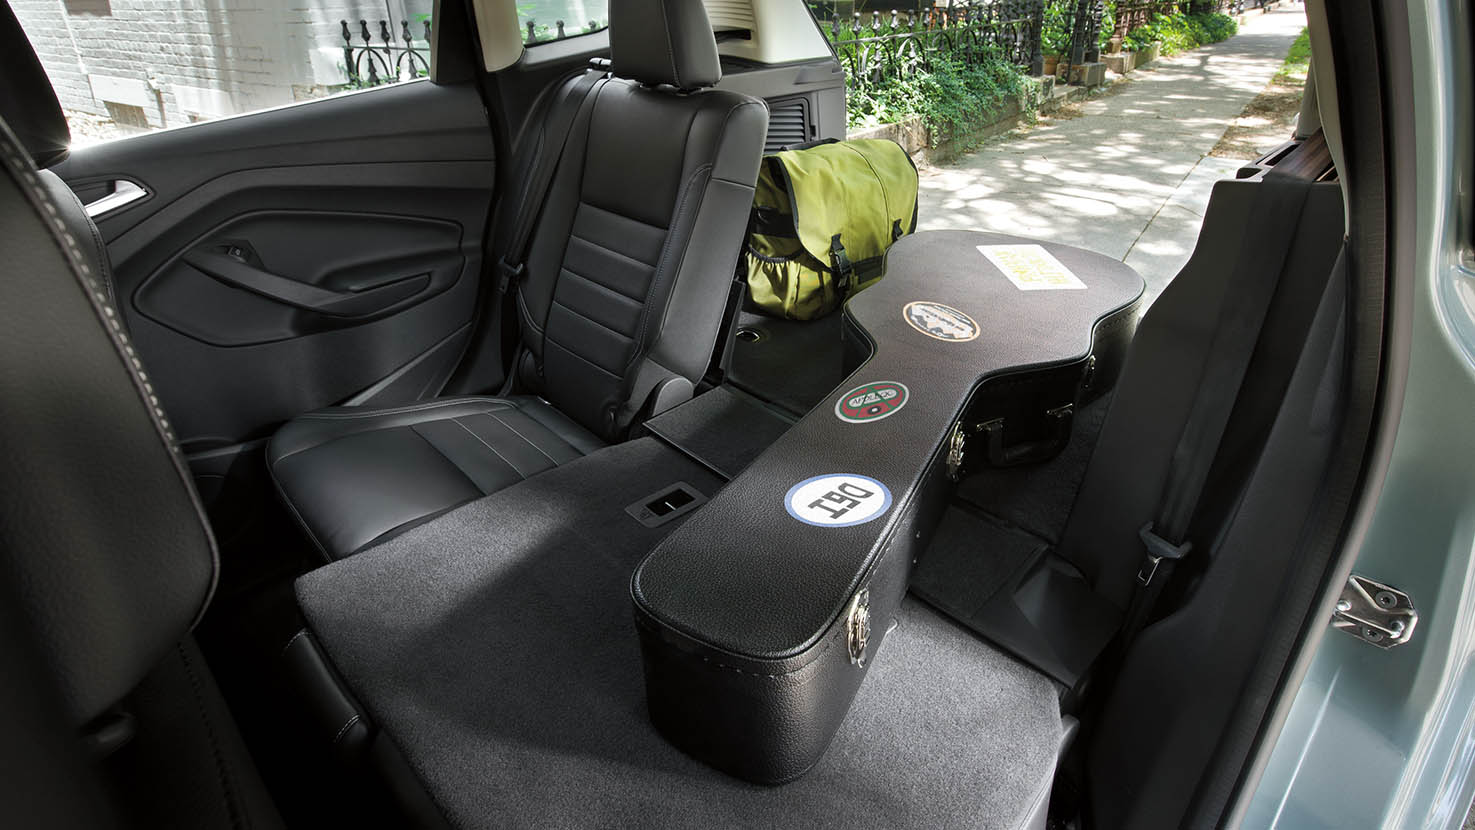 awesome-design-of-the-black-seats-ideas-with-grey-floor-as-the-ford-c-max-2015-interior-ideas